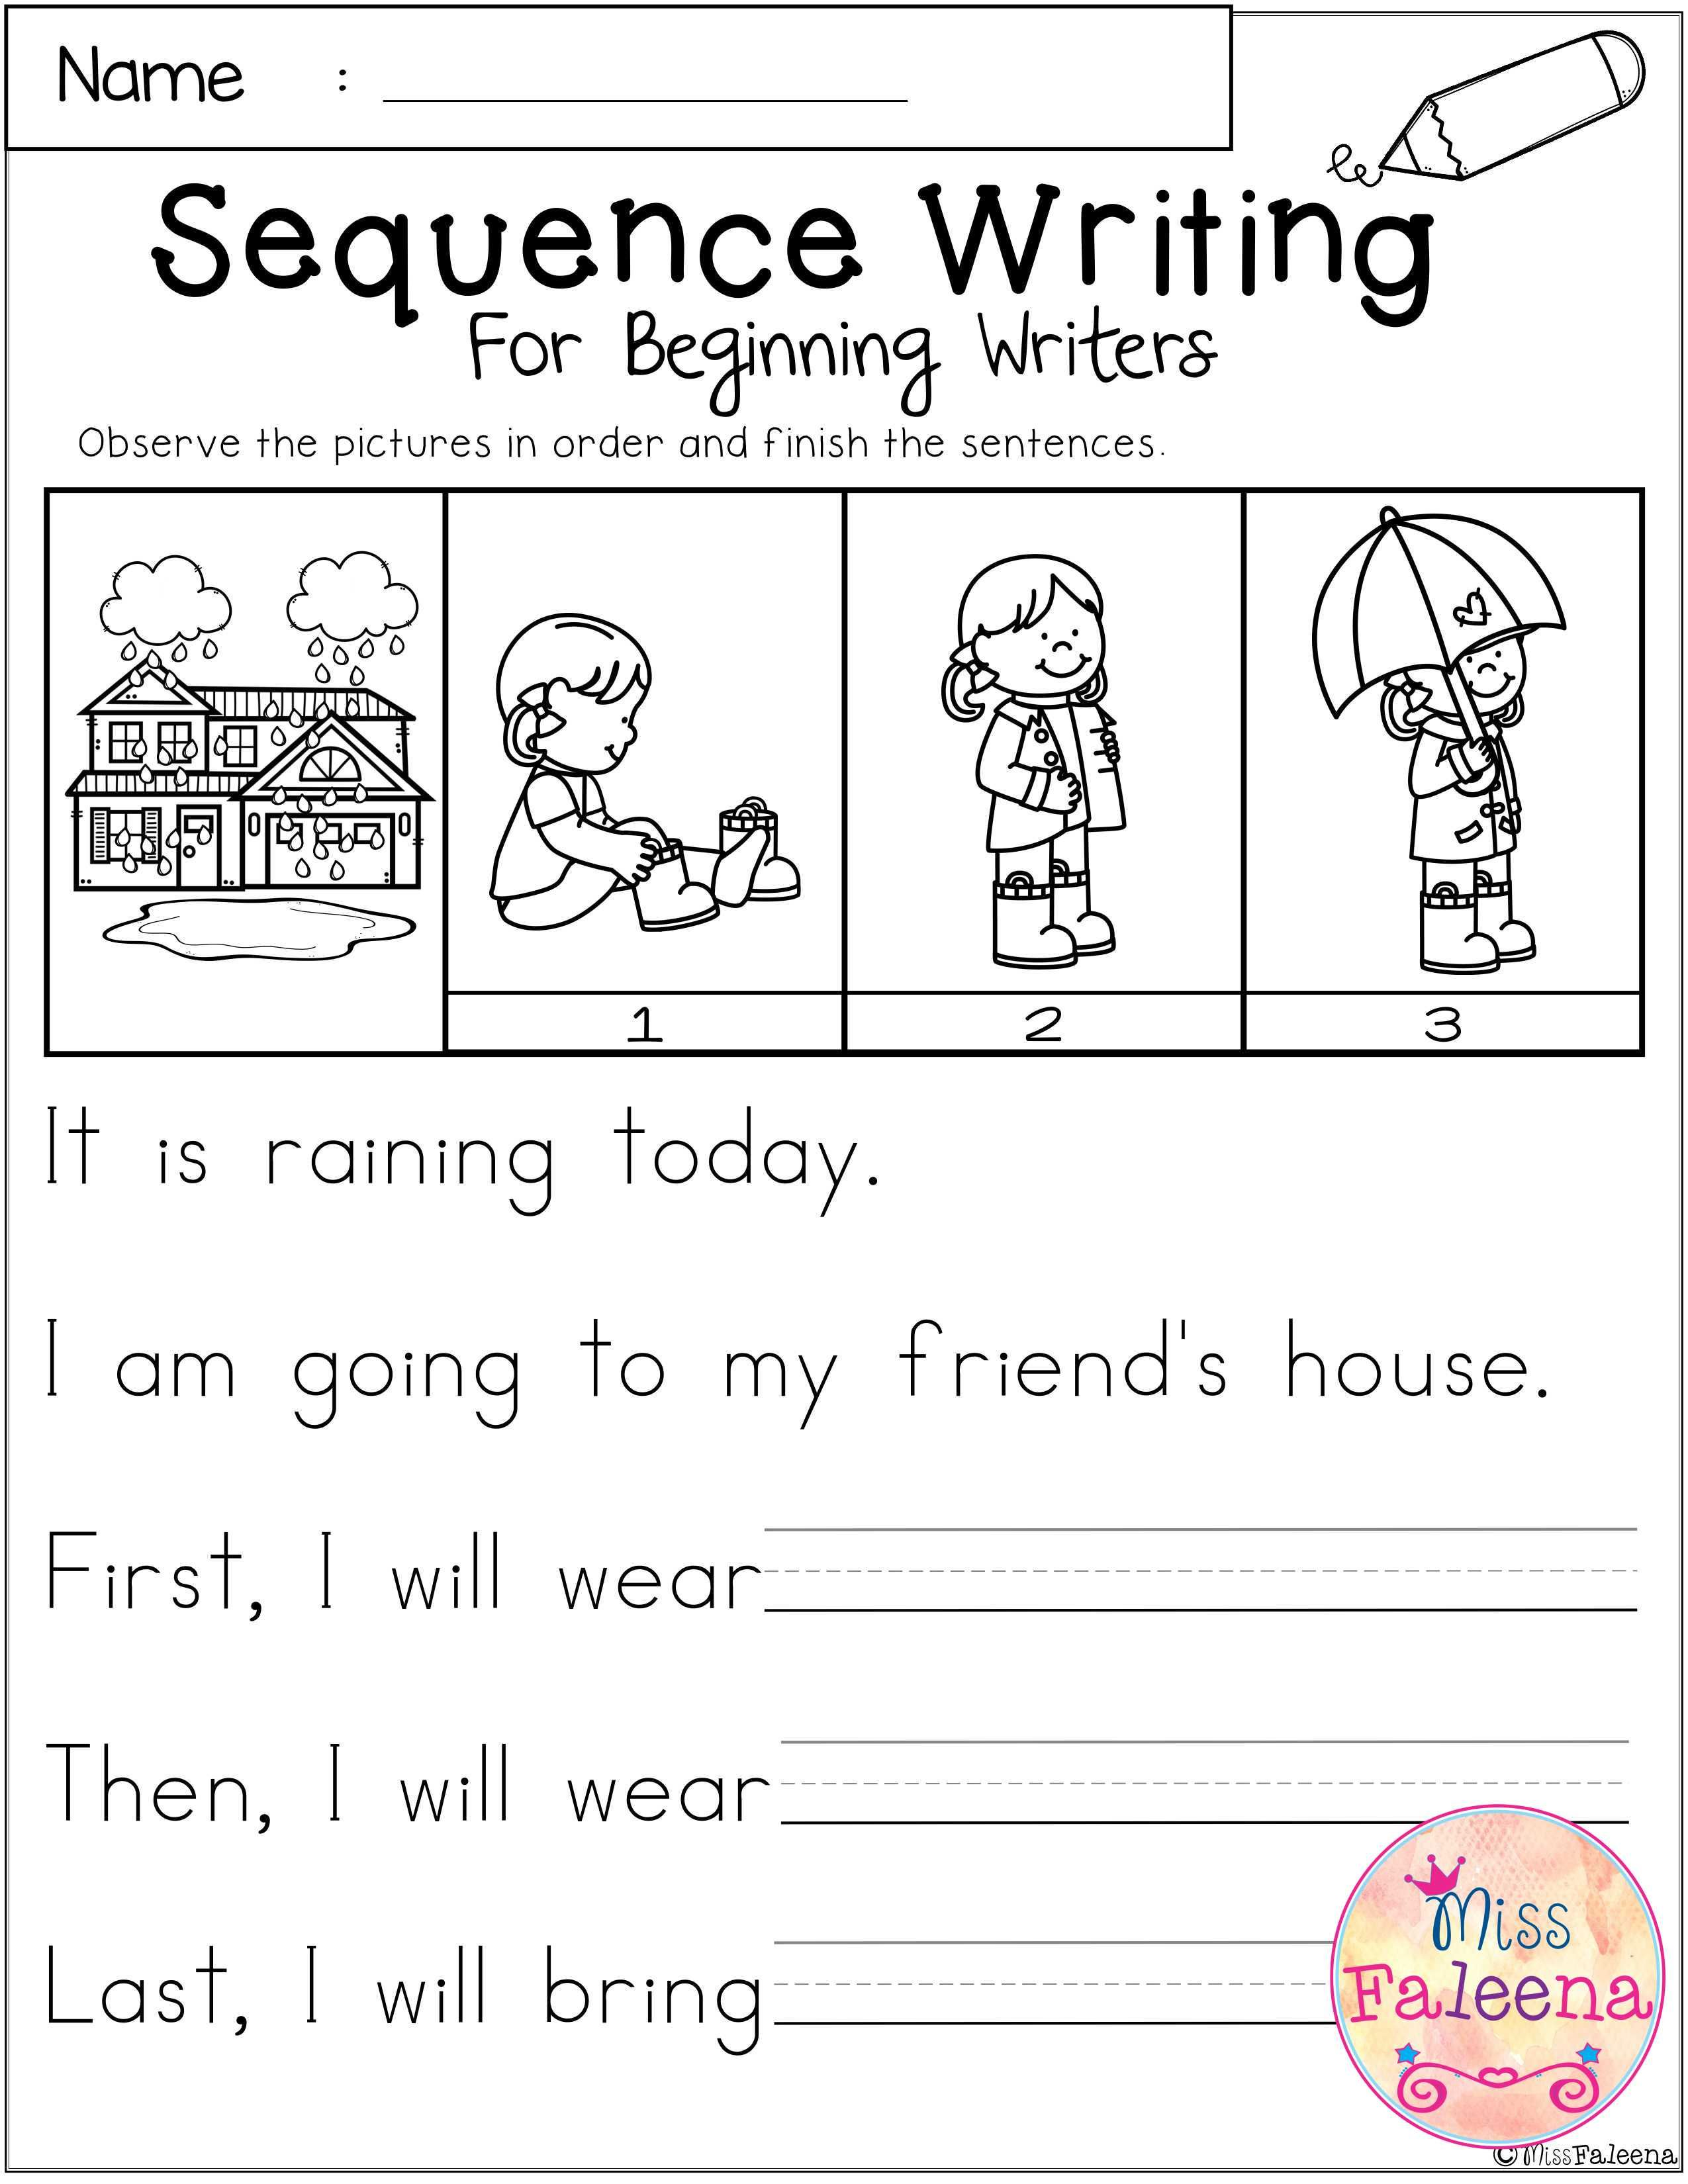 March Sequence Writing For Beginning Writers In 2020 Sequence Writing Kindergarten Writing First Grade Writing [ 3300 x 2550 Pixel ]